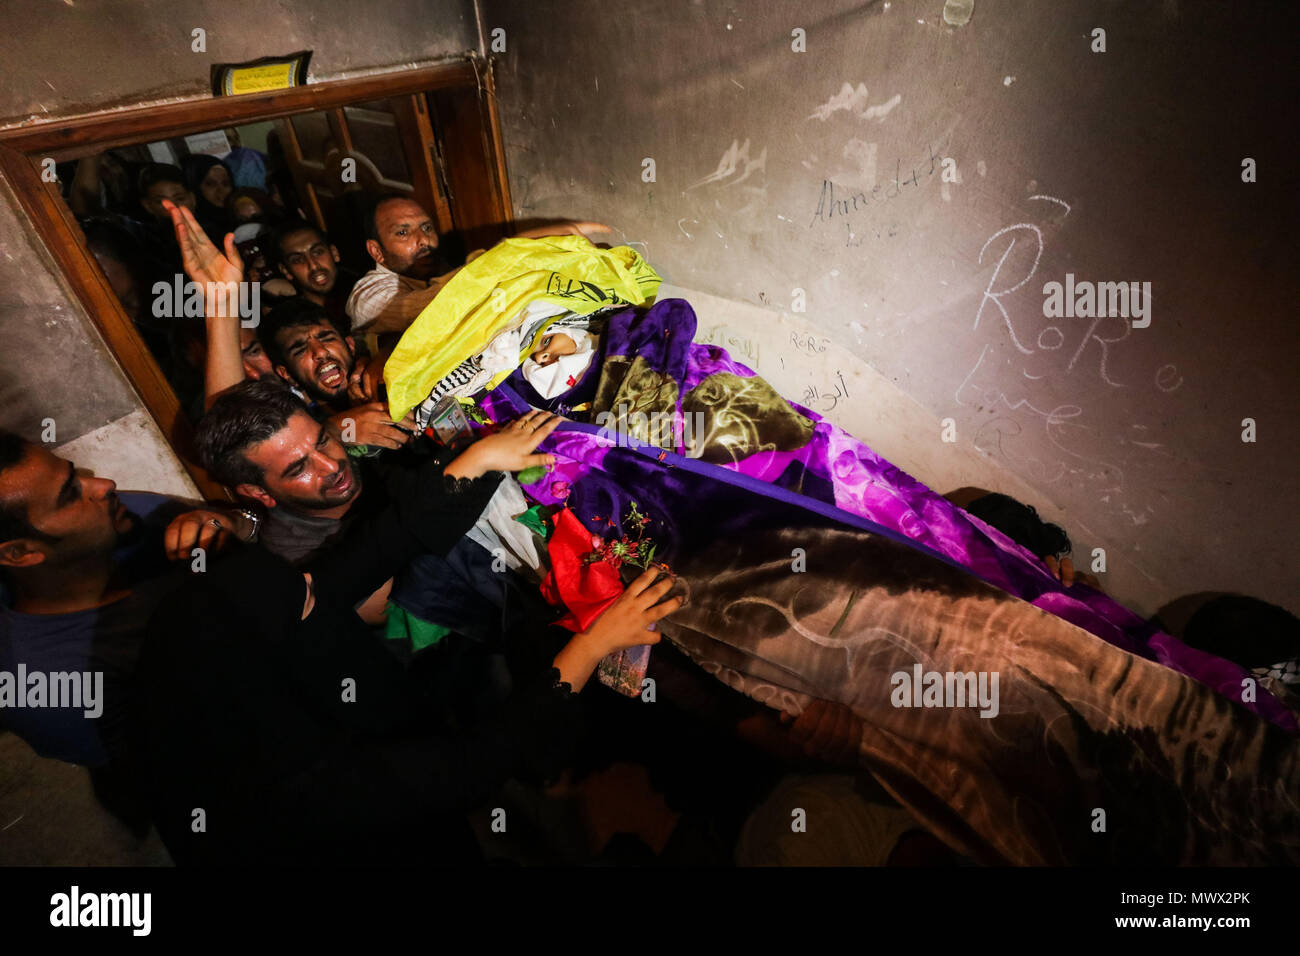 Gaza. 2nd June, 2018. Mourners carry the body of Razan al-Najjar during her funeral in the southern Gaza Strip City of Khan Yunis, on June 2, 2018. Thousands of outraged Palestinian mourners buried on Saturday the female paramedic who was shot dead by Israeli gunfire close to Gaza's border with Israel. Credit: Xinhua/Alamy Live News - Stock Image